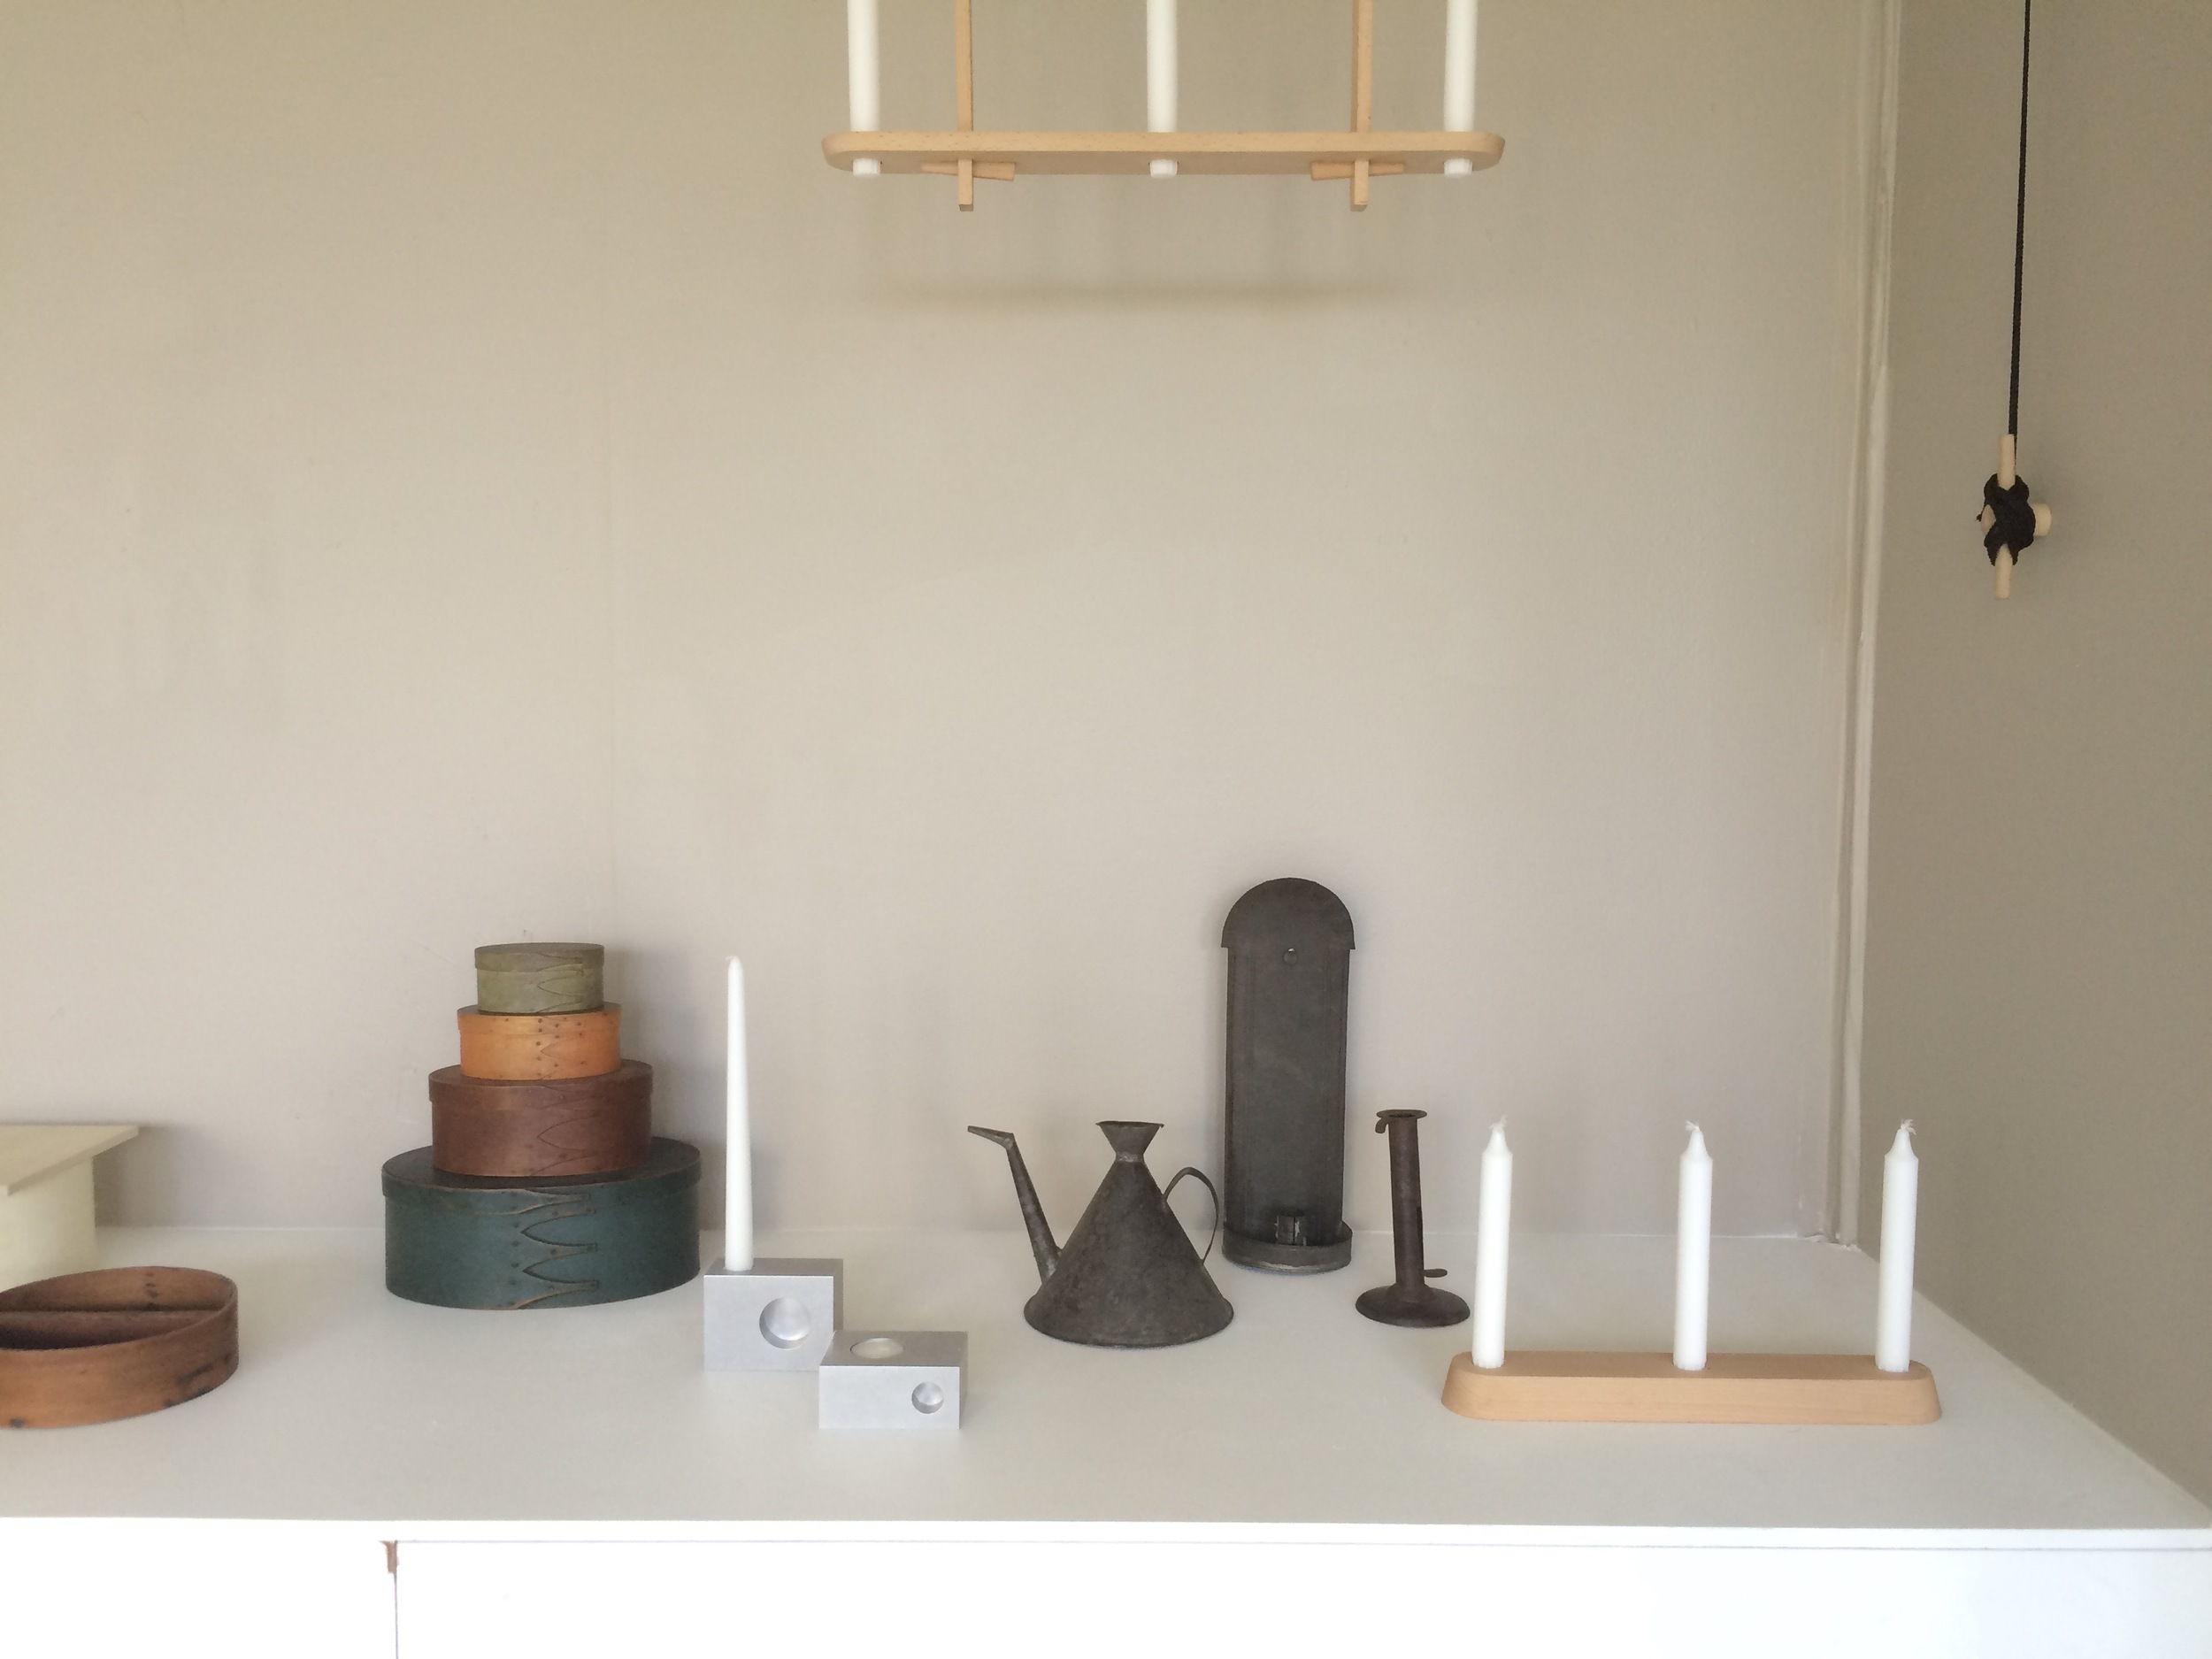 The exhibition featured the designers' work alongside selected Shaker artifacts from Hancock Village.